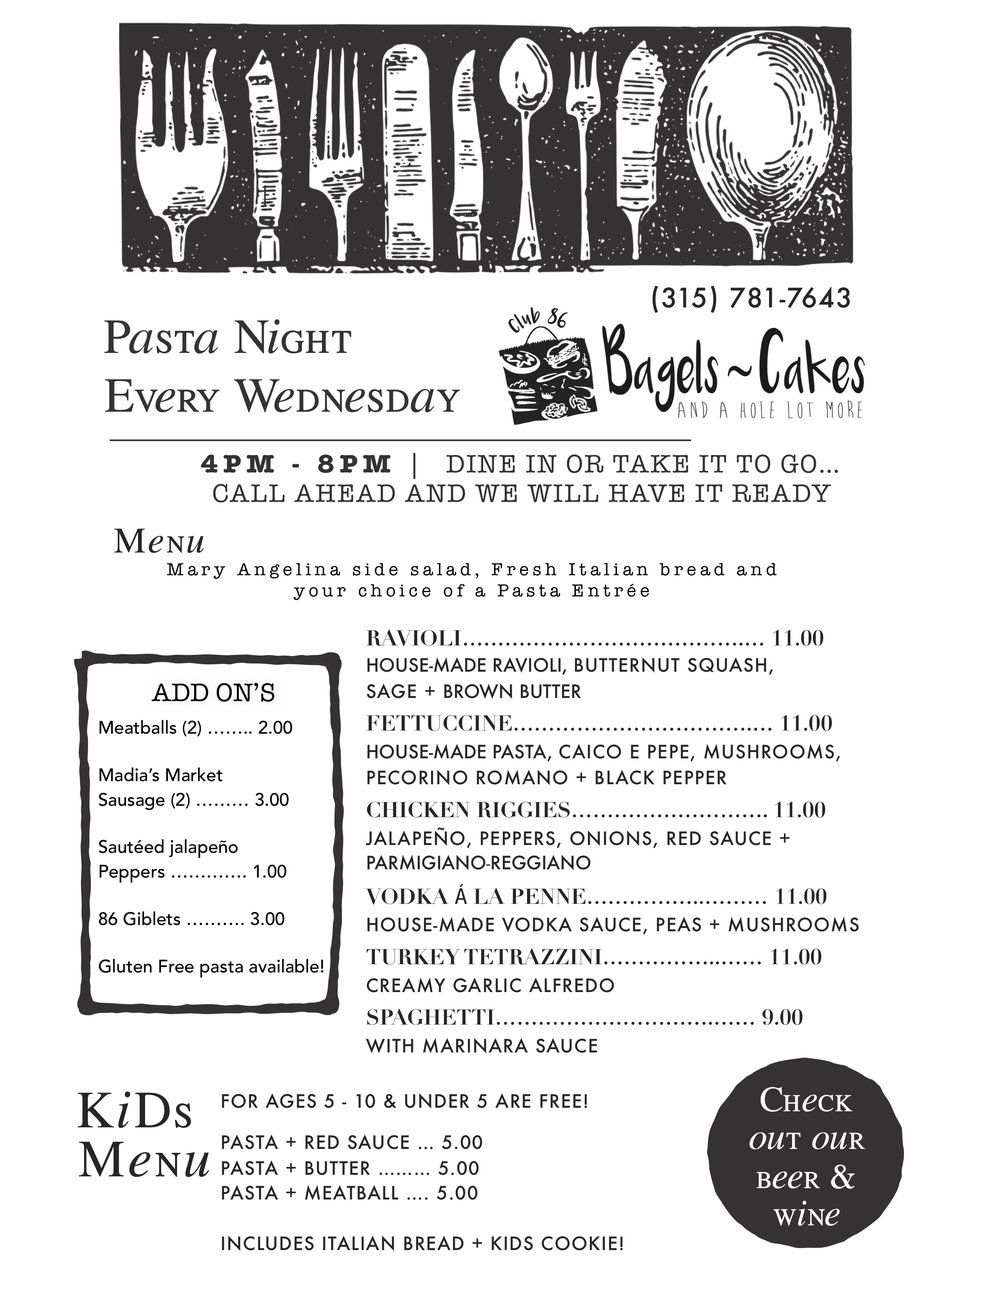 Every Wednesday … Pasta night! - Dine in or call ahead and take it to go!(315) 781 . 7643